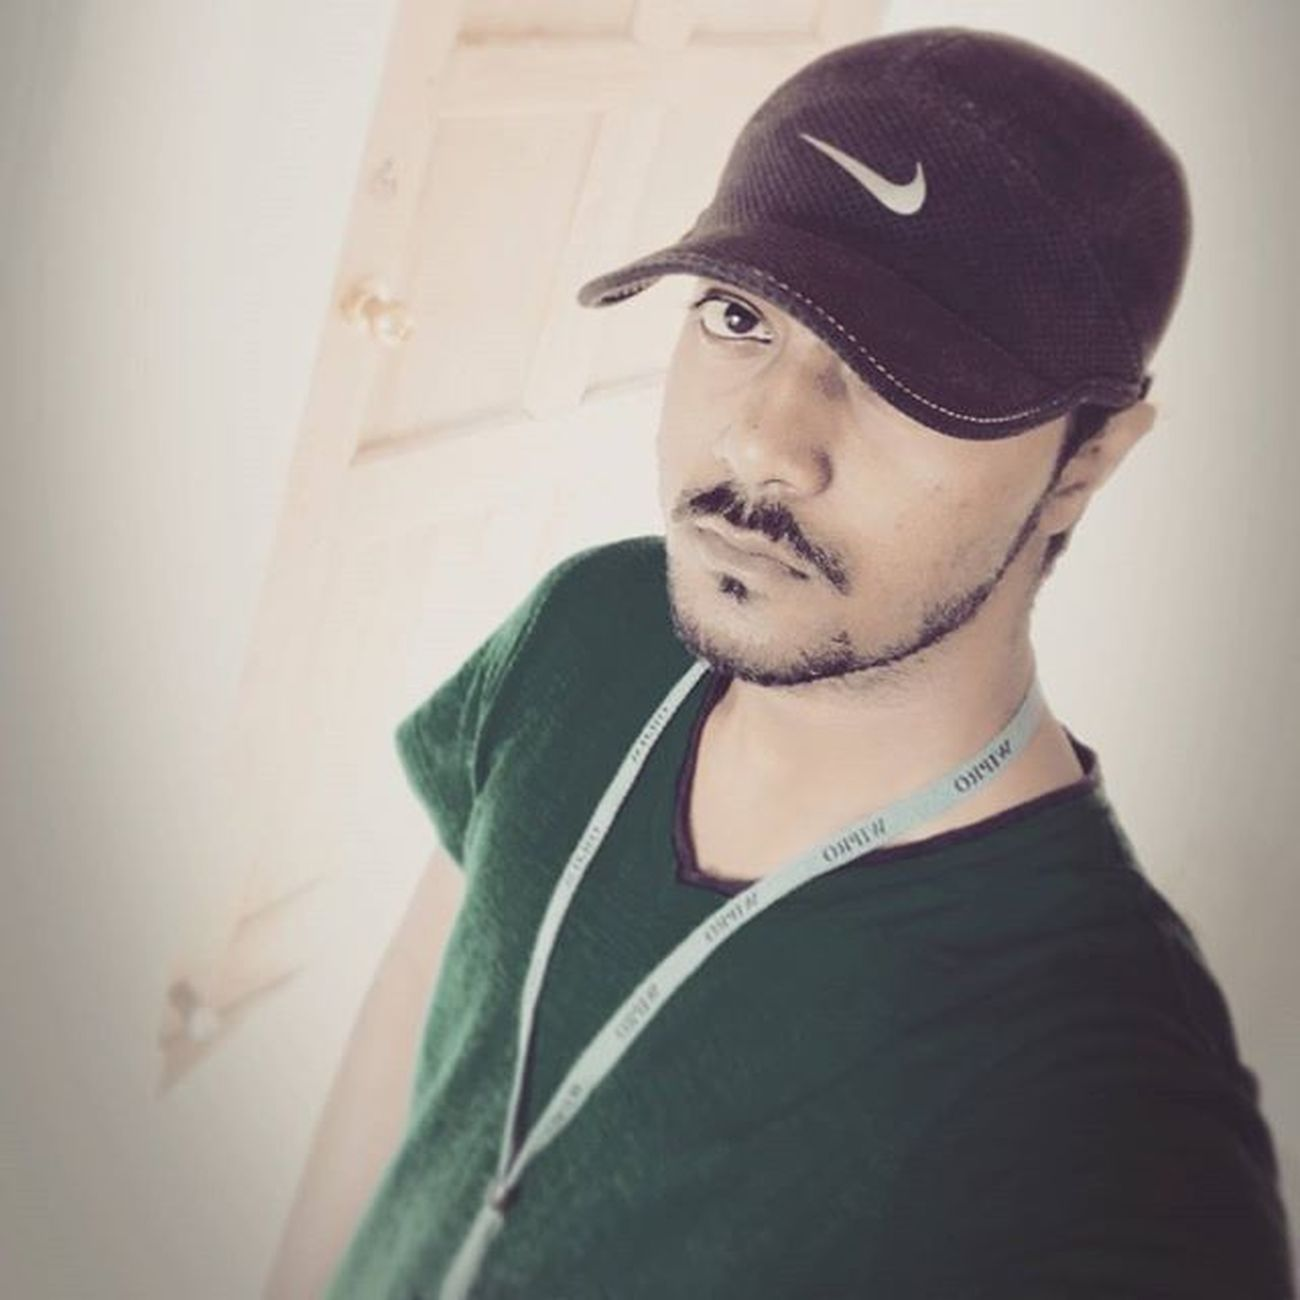 A day with a selfie makes me believe that I am the best and no one can tangle my life with their fake promises. AlwaysTrance Trance Trancefamily Uplifting Dudesbelike Dude Hot Sexyavtar Beautiful Beardgang Beard Muscular Fitness Fit Emotional